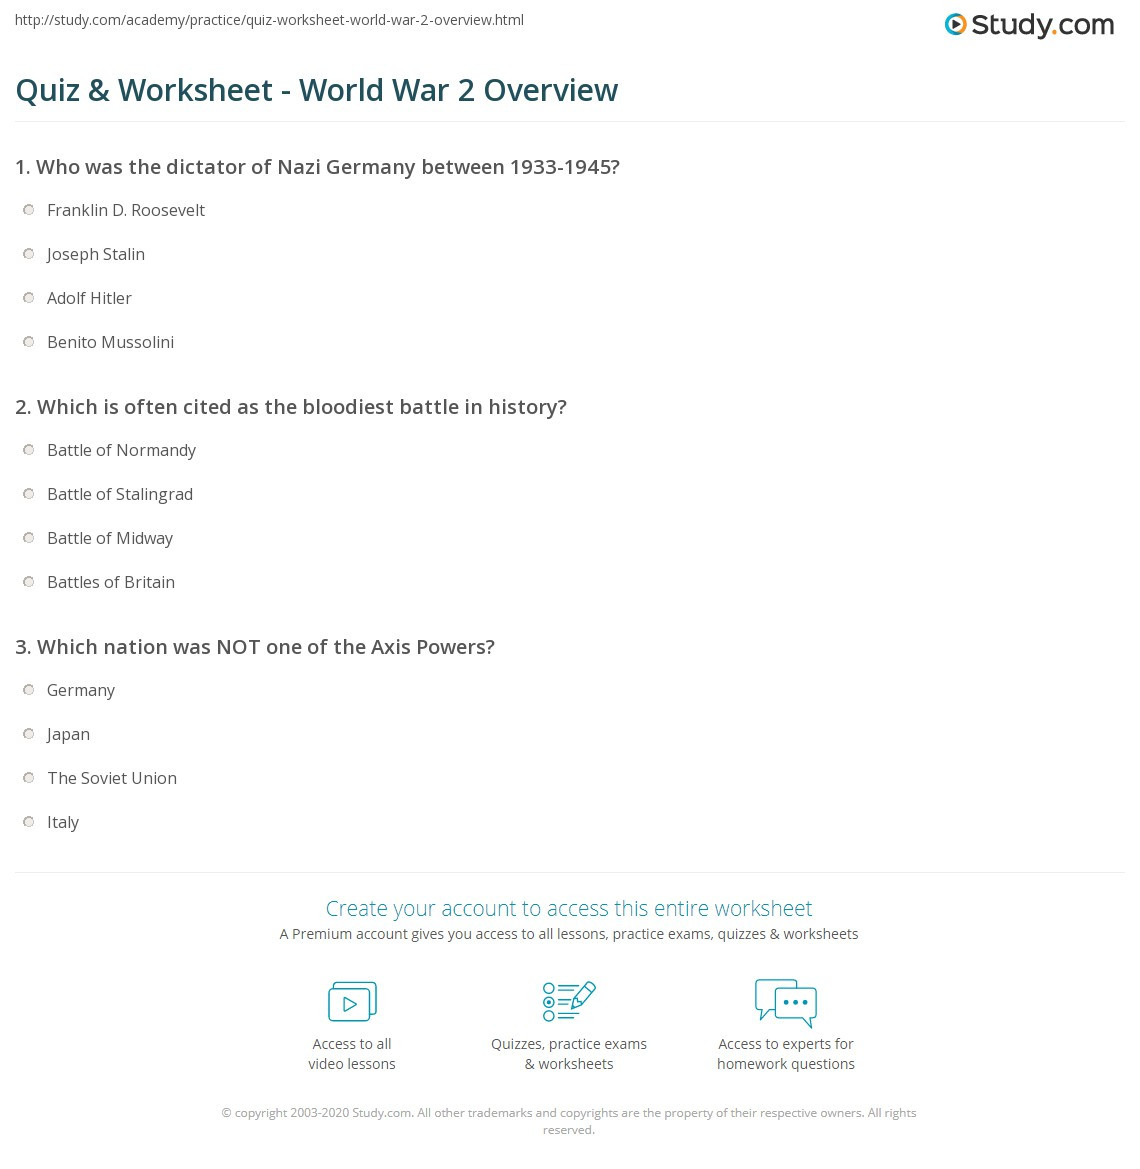 Summary Worksheets 5th Grade Quiz Worksheet World War Overview Study Worksheets 7th Grade